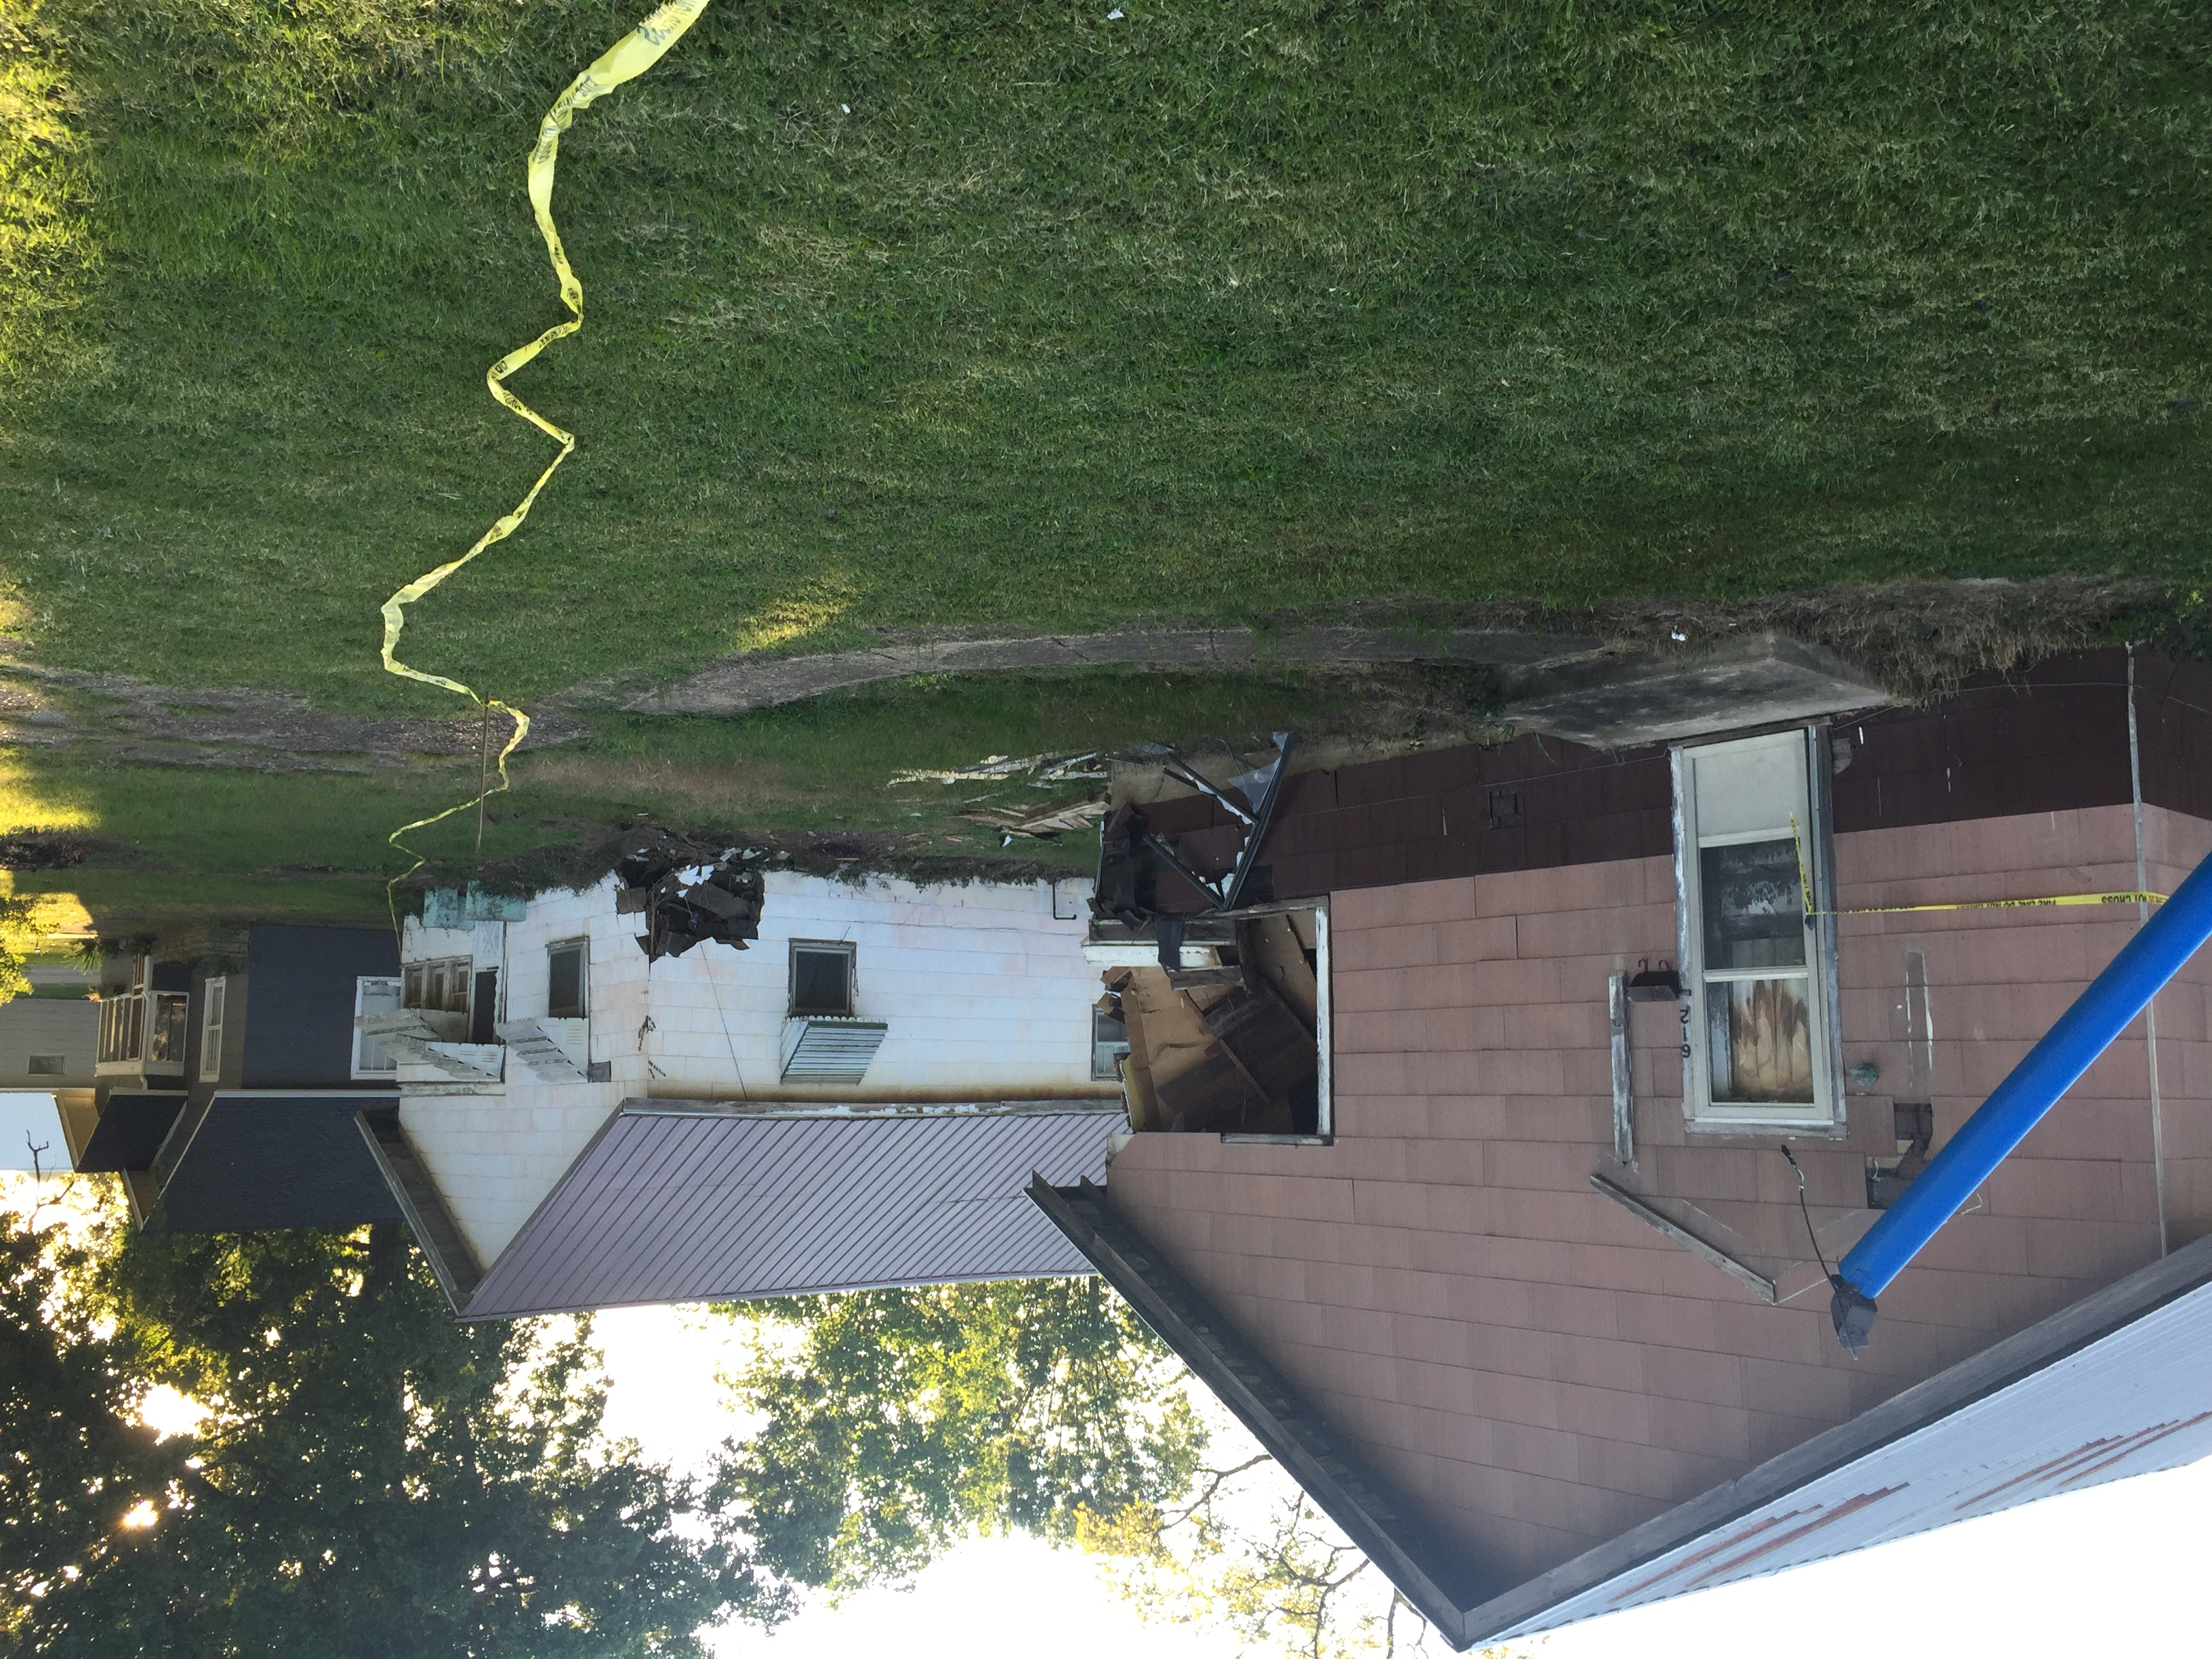 No Injuries after Vehicle Hits Houses